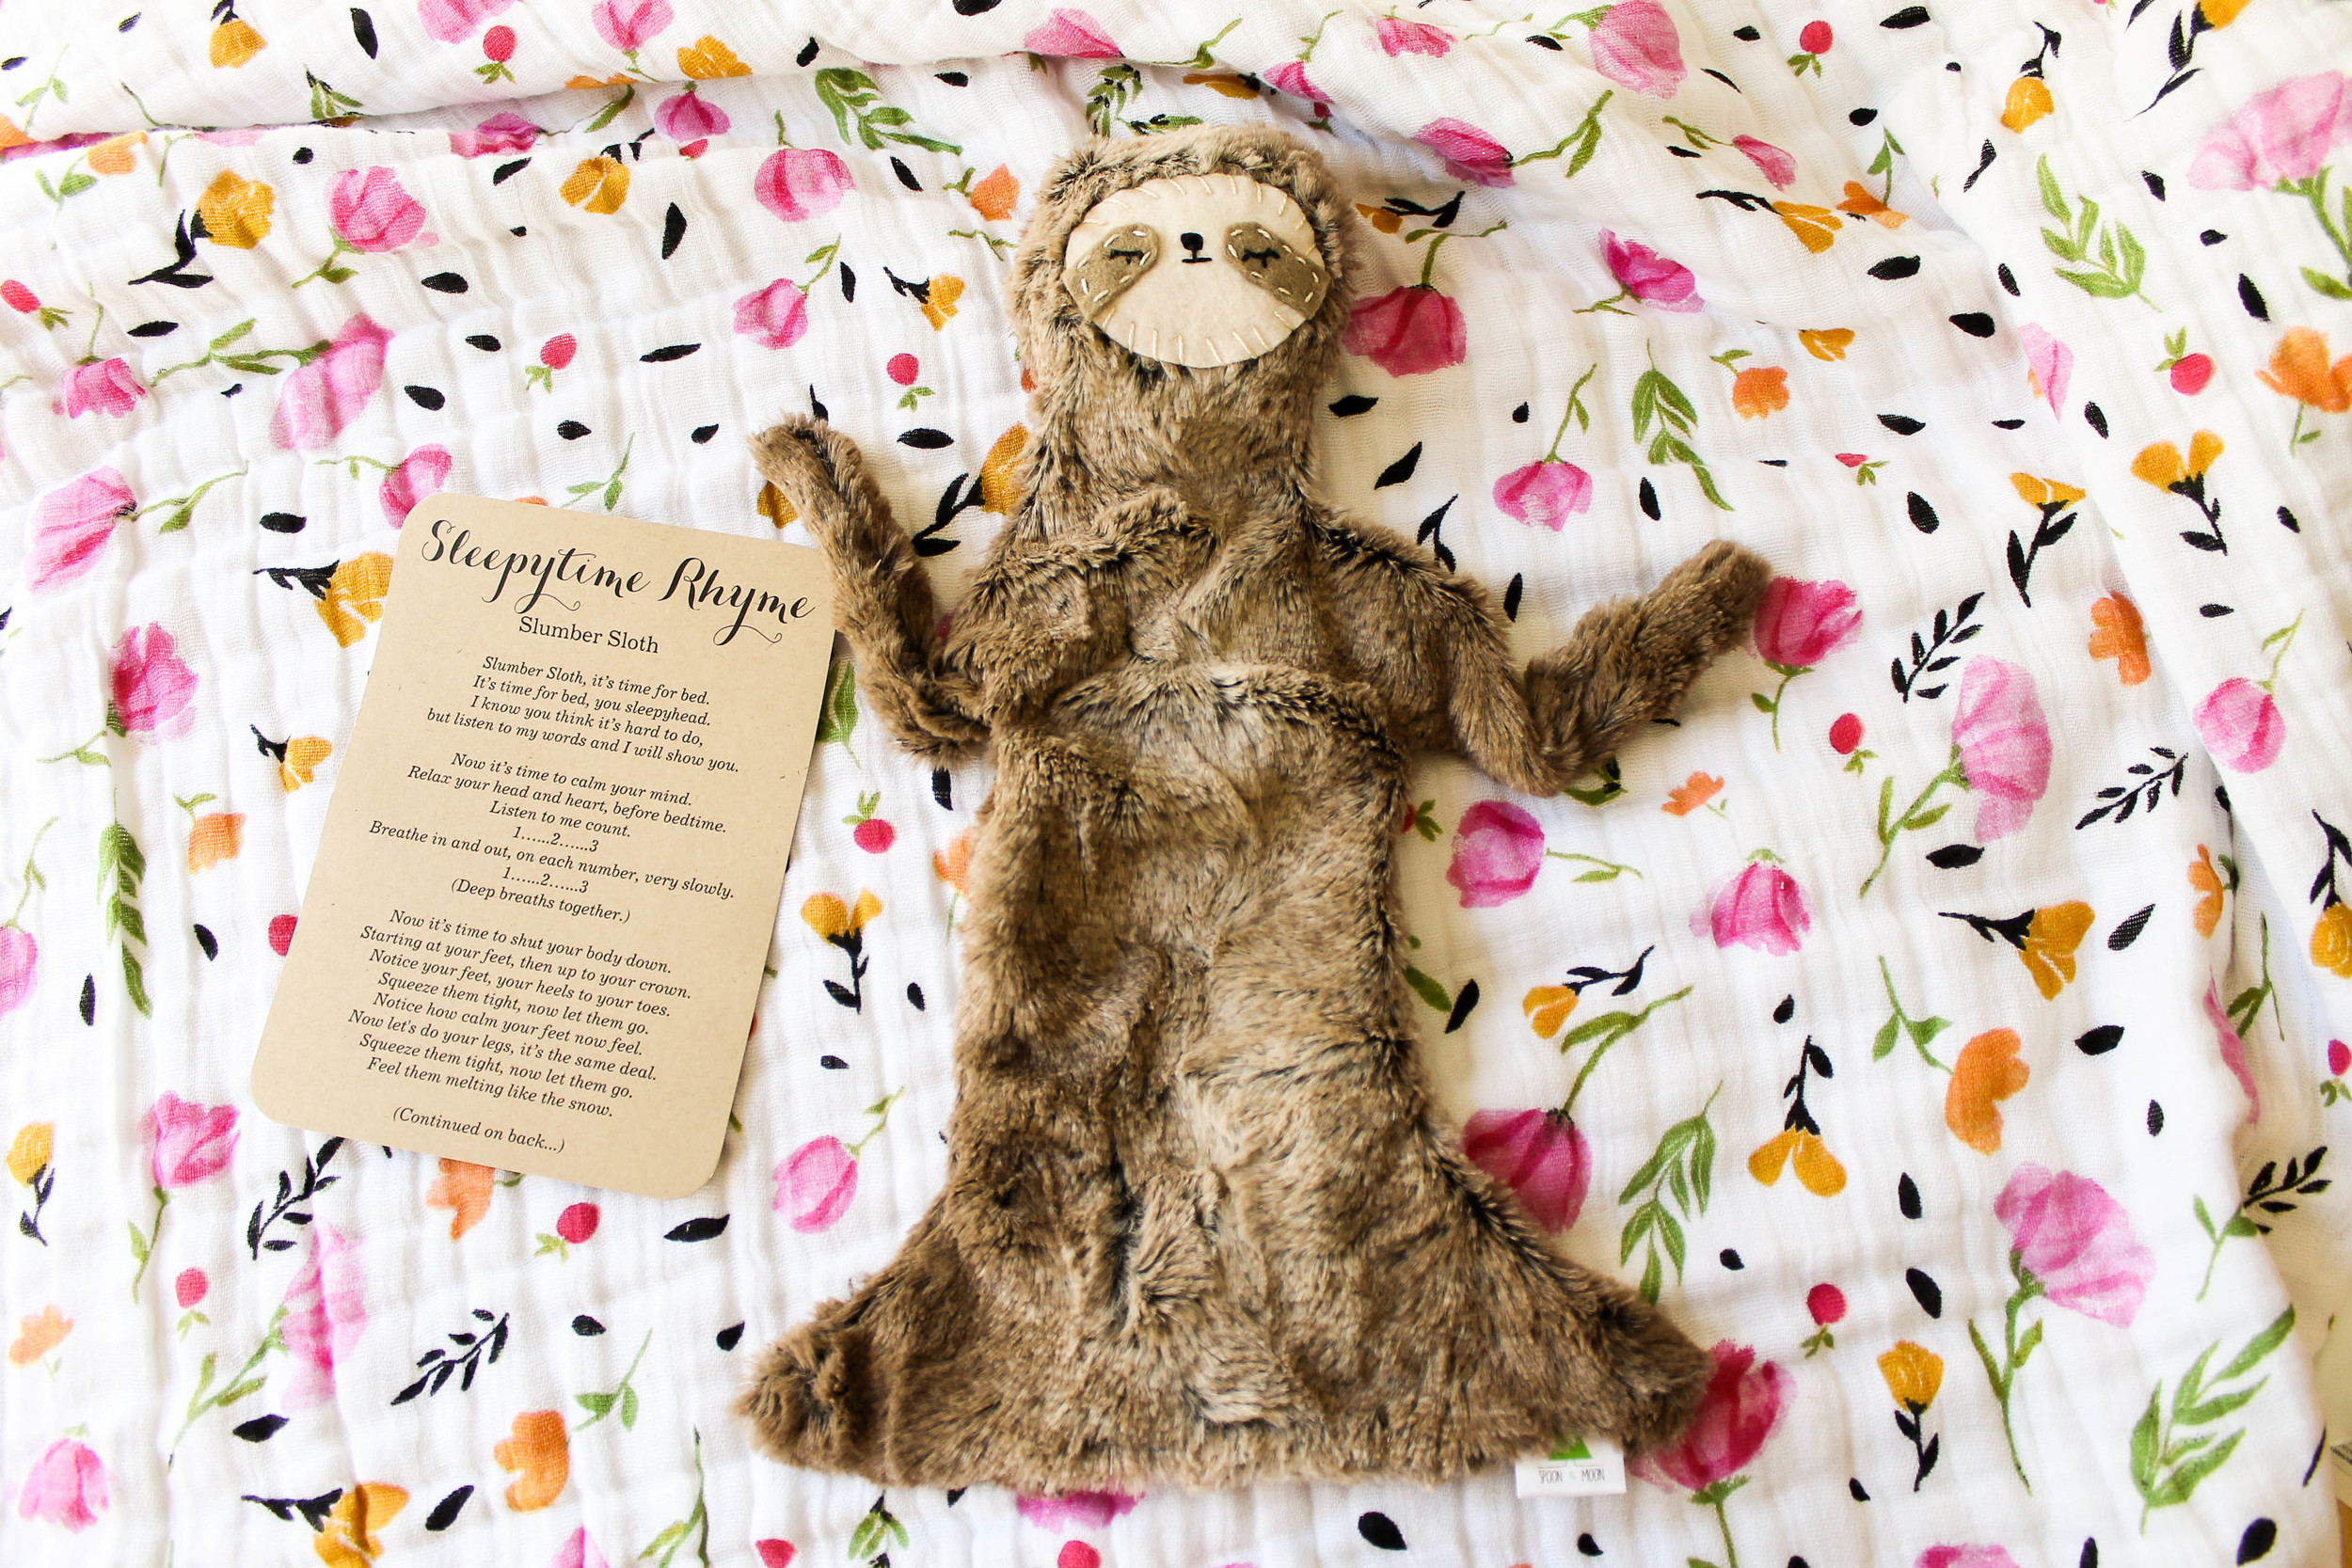 favorite products for second baby   Slumber Sloth by Spoon and Moon